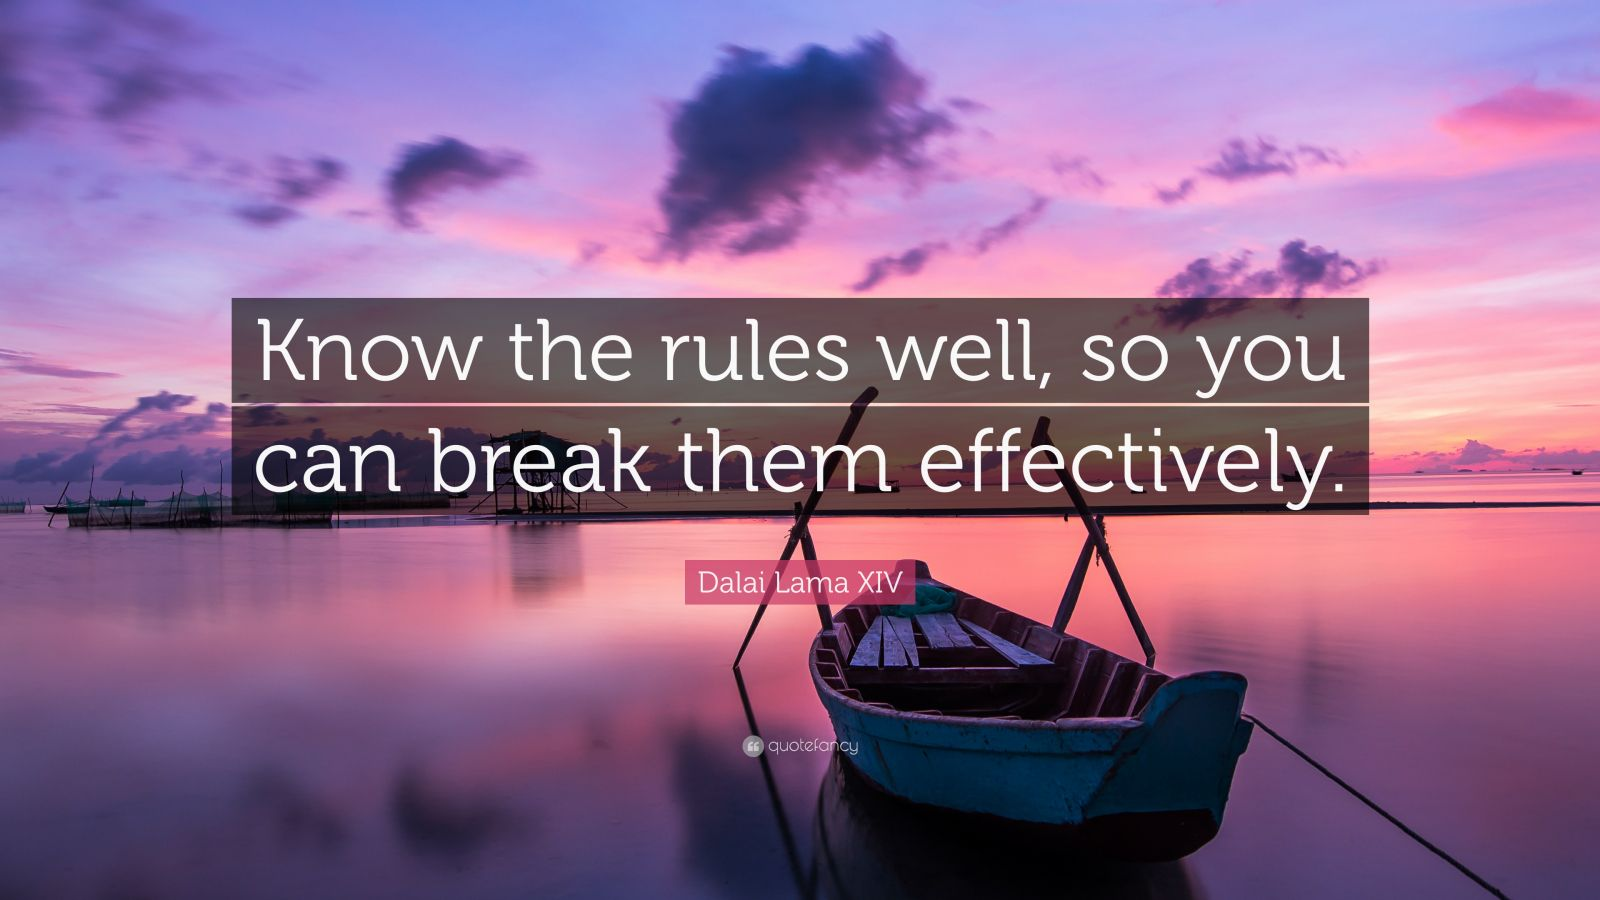 Motivational Quotes On Attitude Wallpapers Dalai Lama Xiv Quote Know The Rules Well So You Can